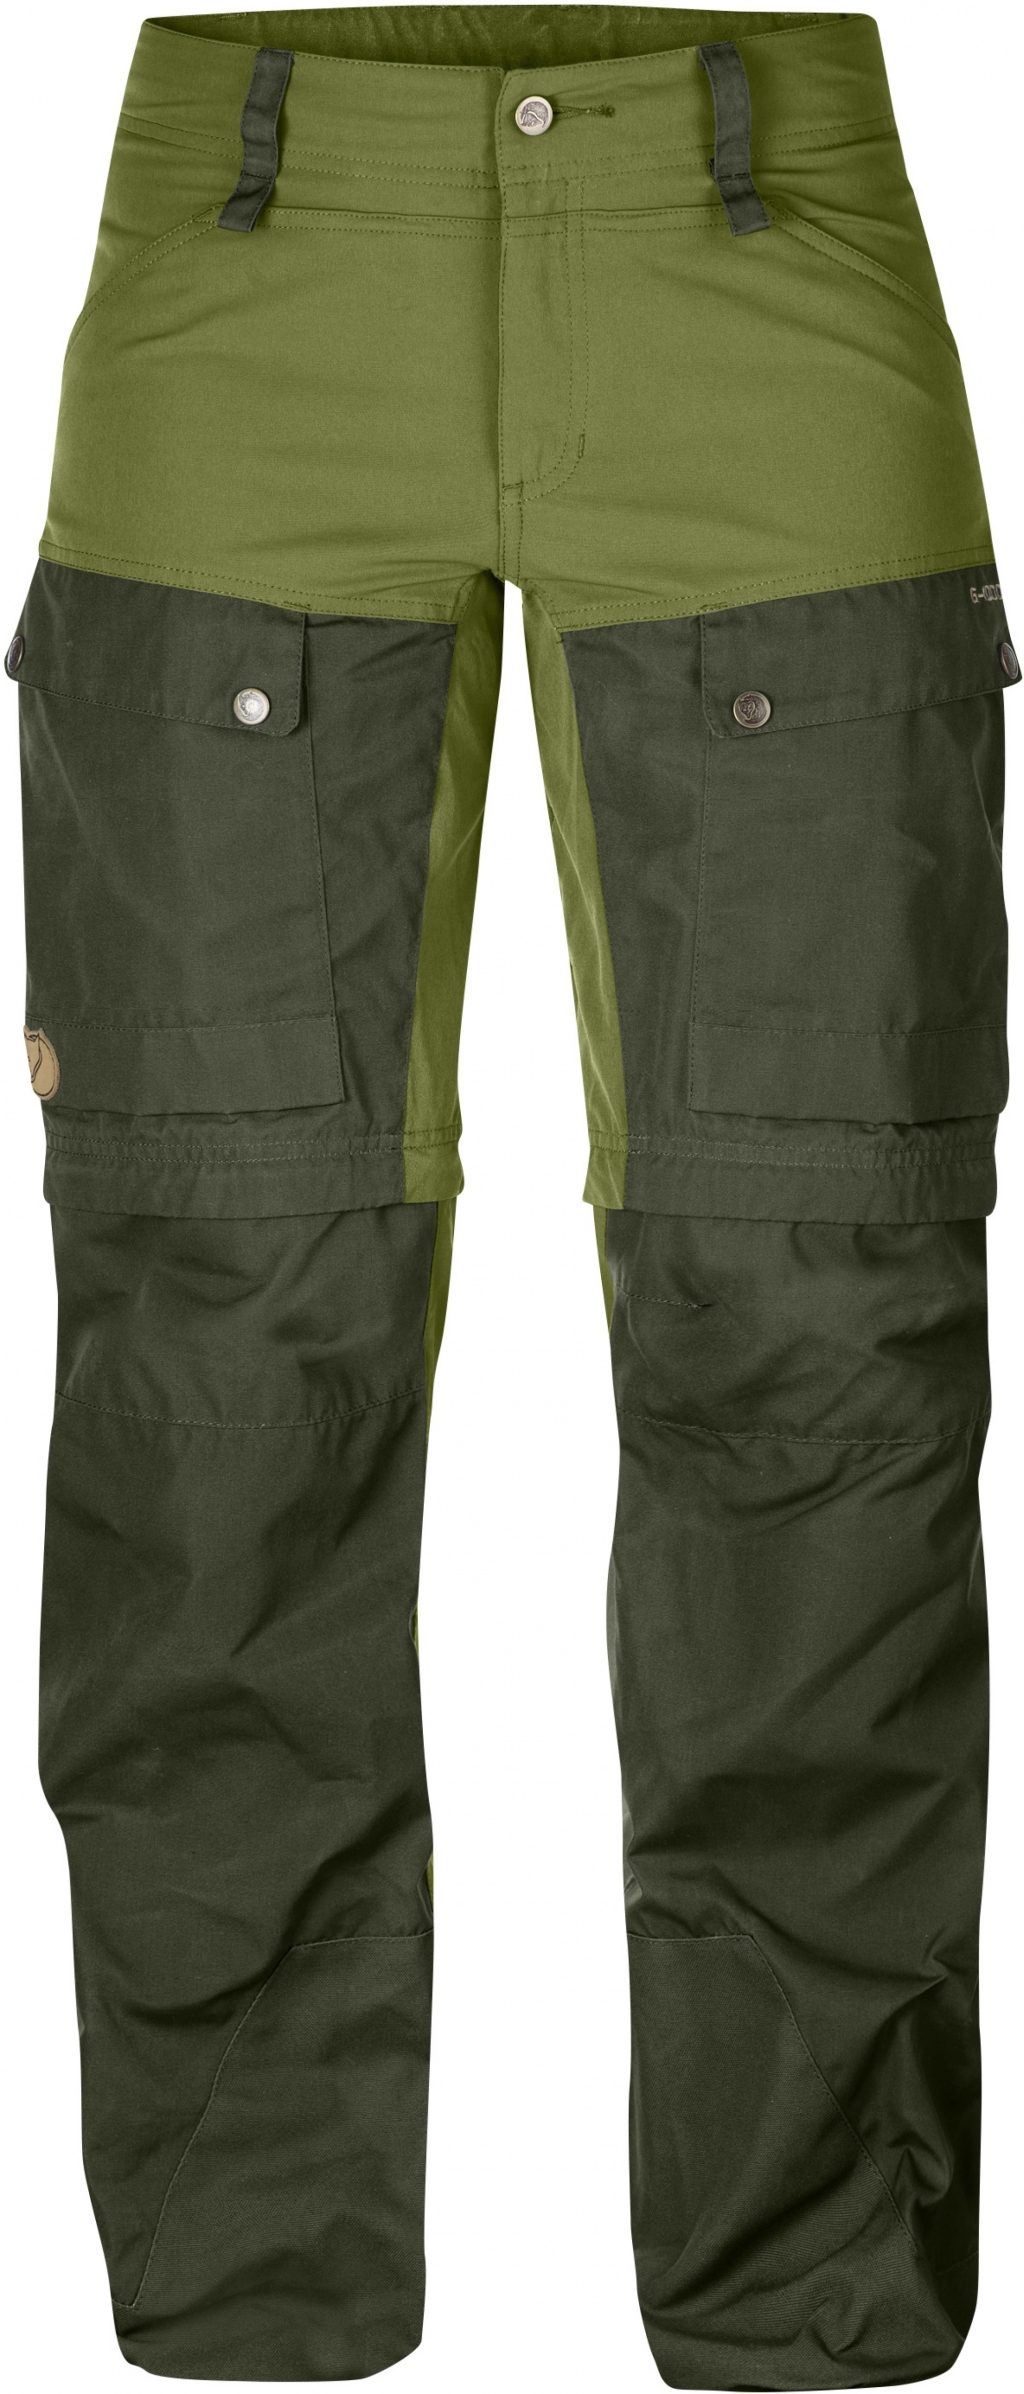 FjallRaven Keb Gaiter Trousers W. Avocado-30